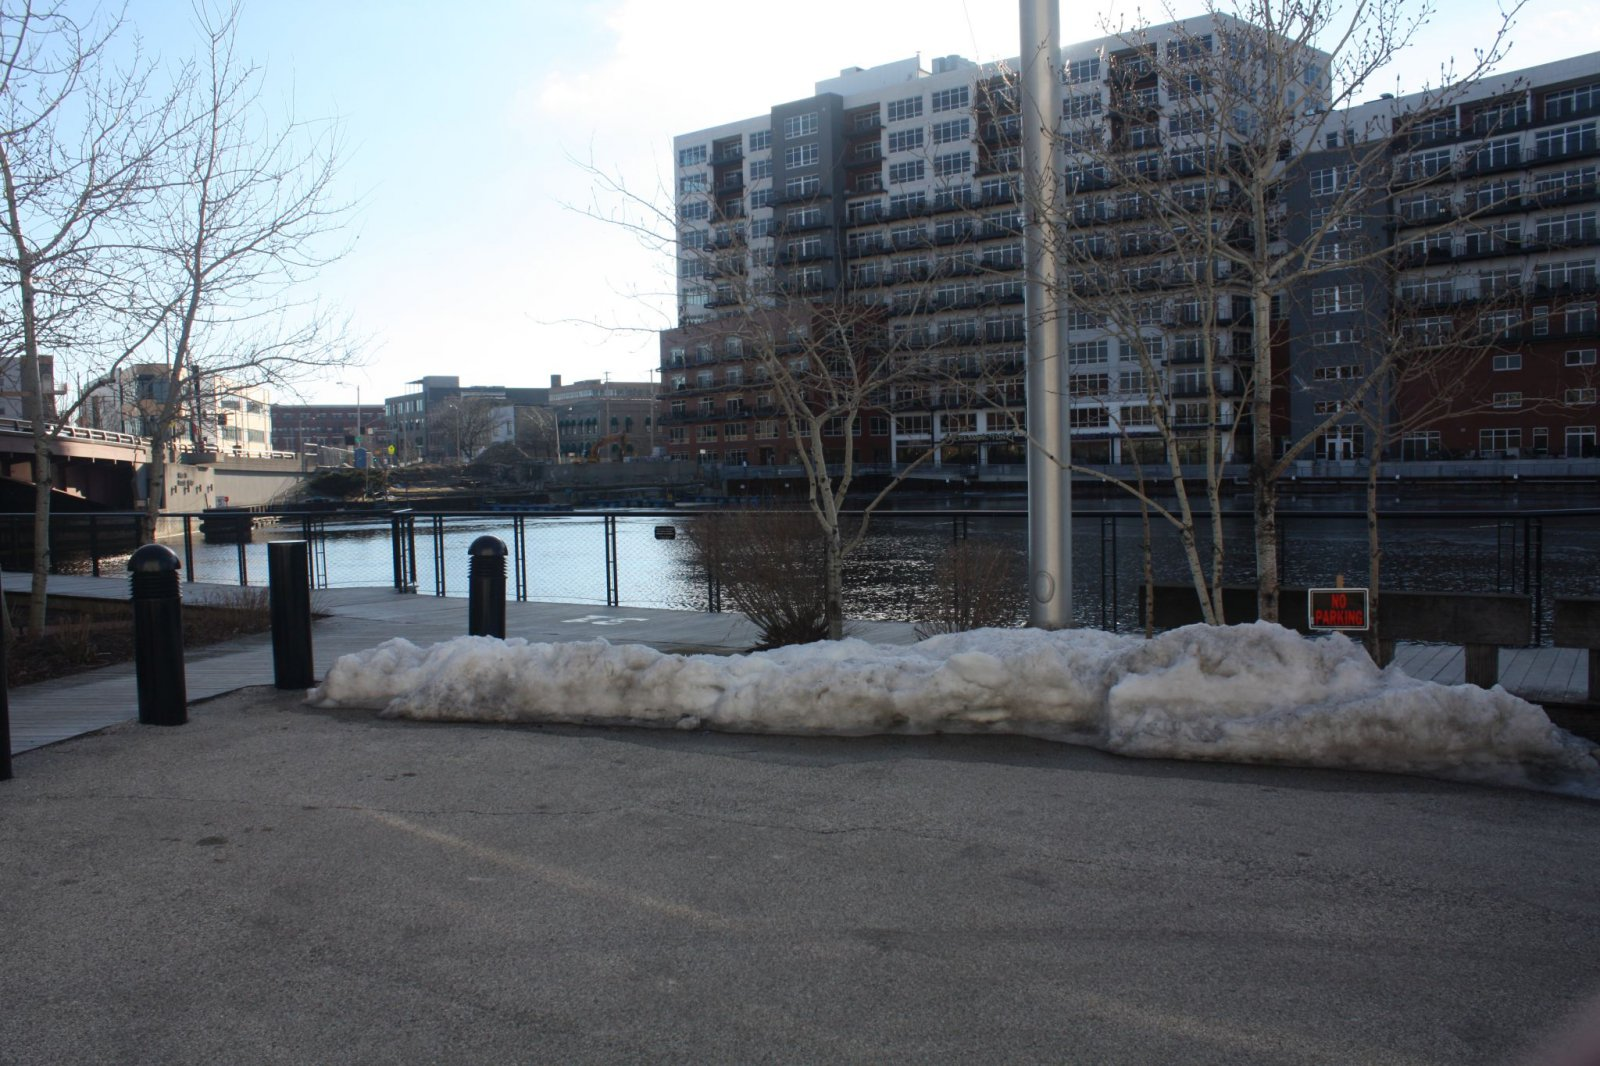 Site of the Dousman Dock where Lady Elgin passengers waited